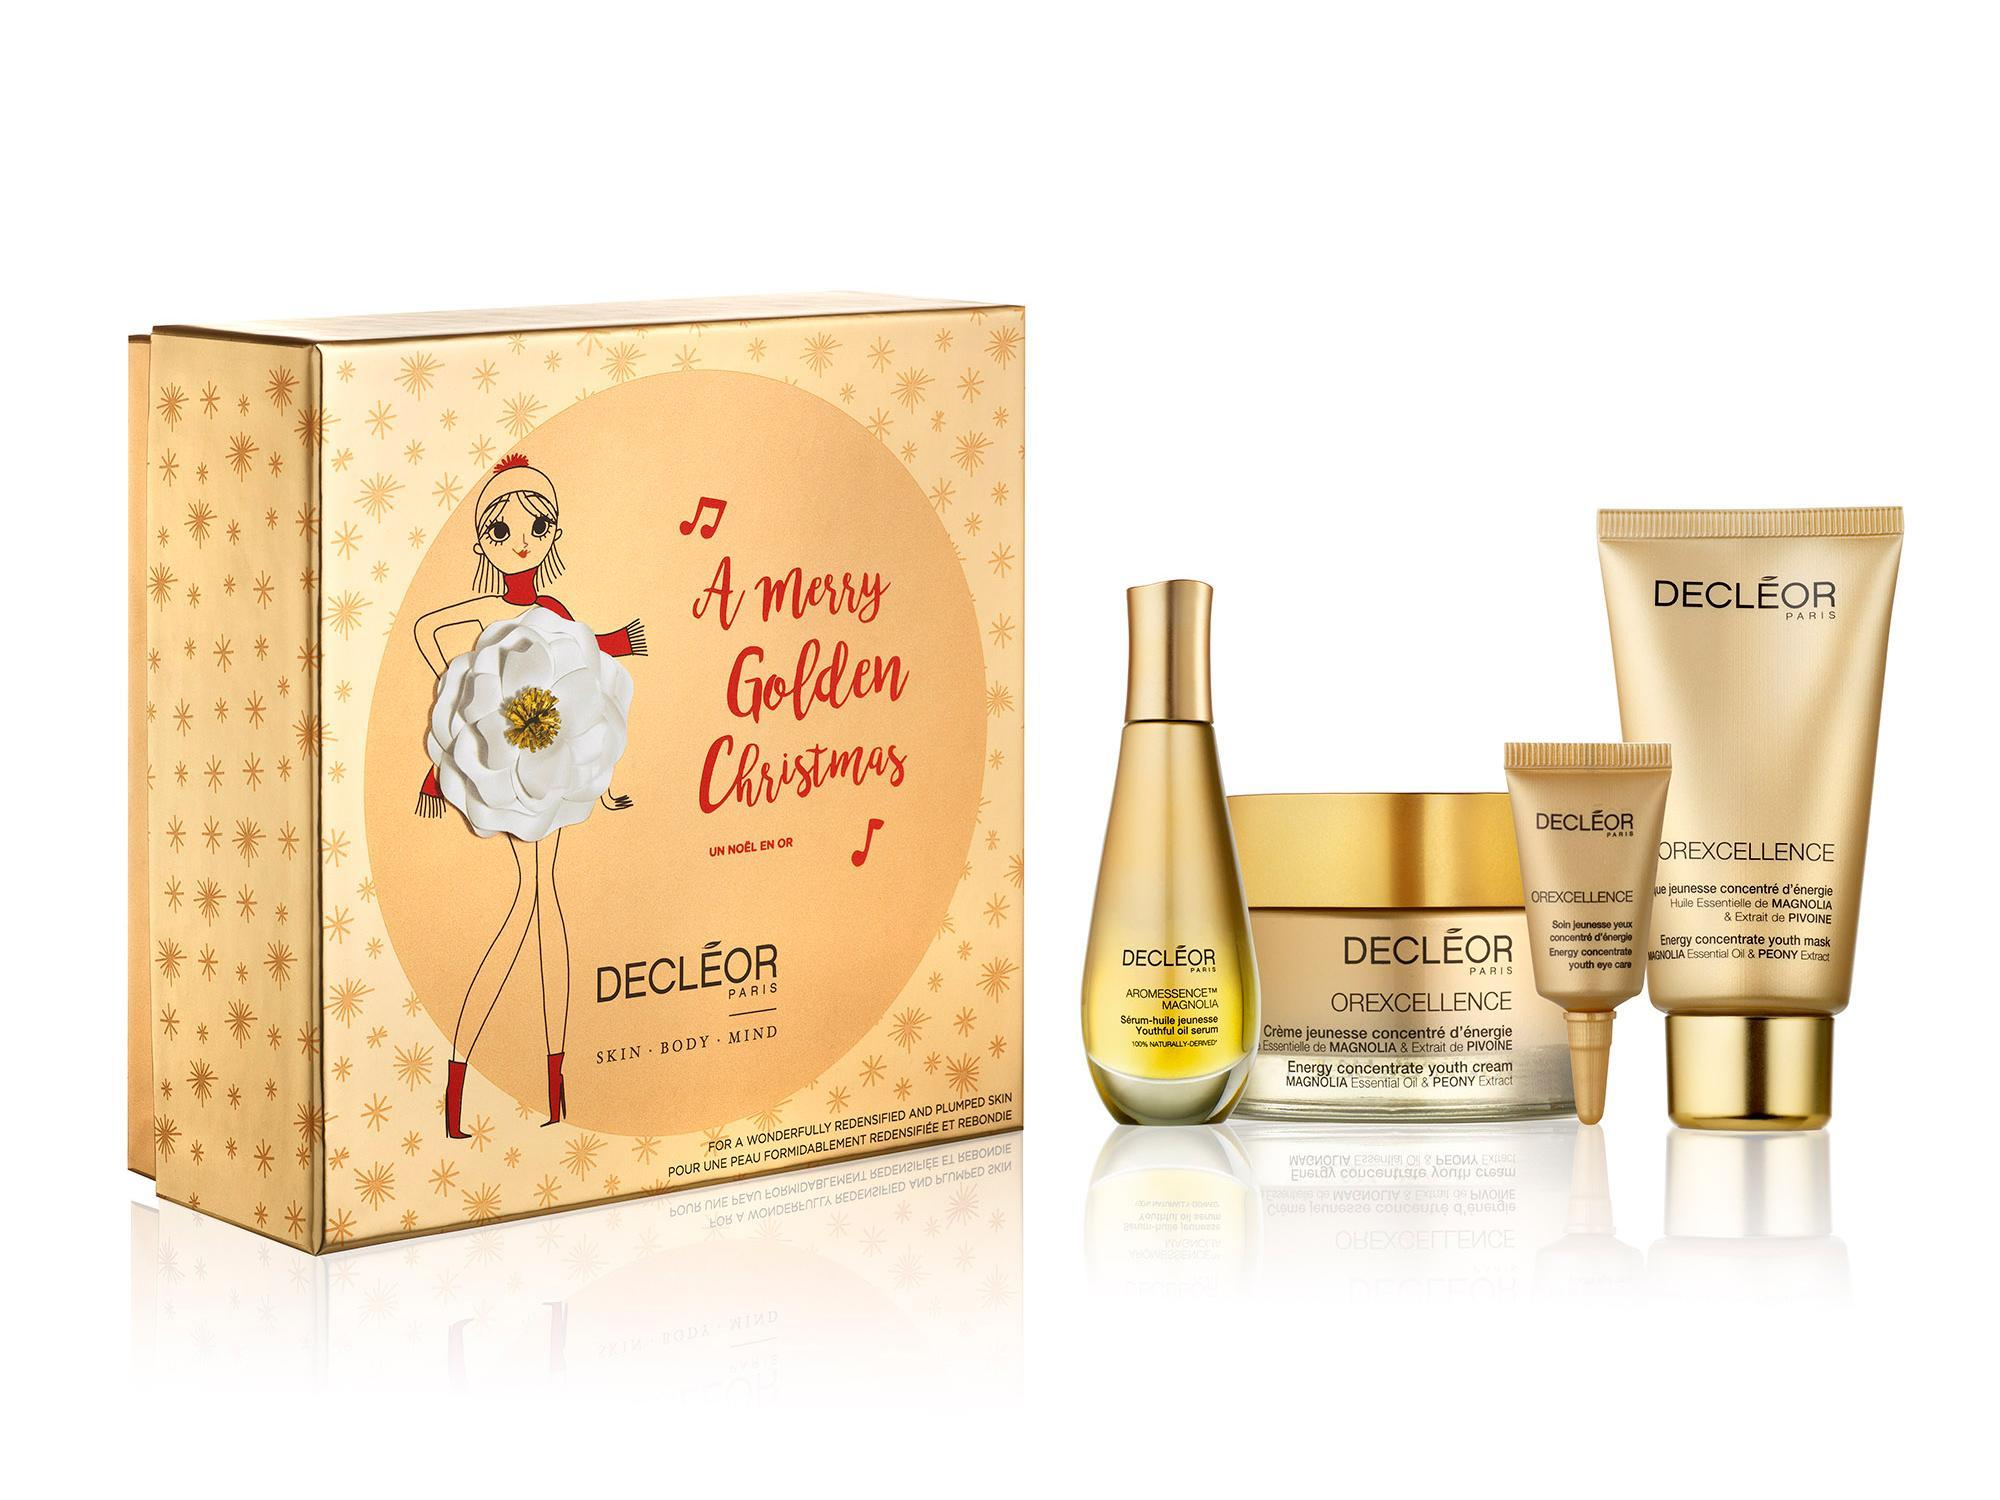 22 Best Luxury Beauty Gifts Over 50 The Independent Barn Mom Trial Set Replenish Full Decleor Use Essential Oil Blends For Base Of Their Products And This Gift Is Perfect Solution Firming Smoothing Lifting Illuminating